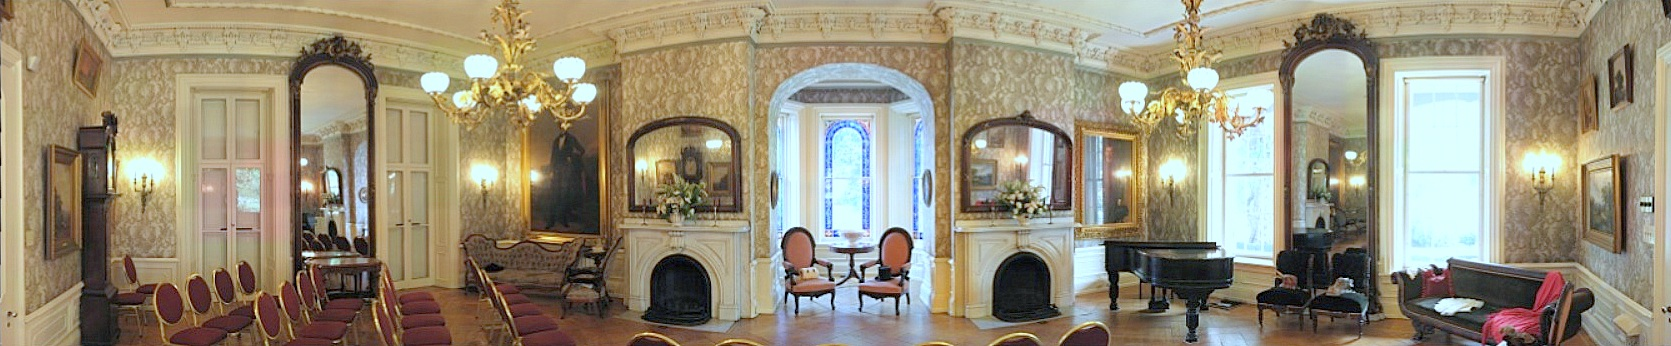 HARRIS-CAMERON MANSION PARLOR pano